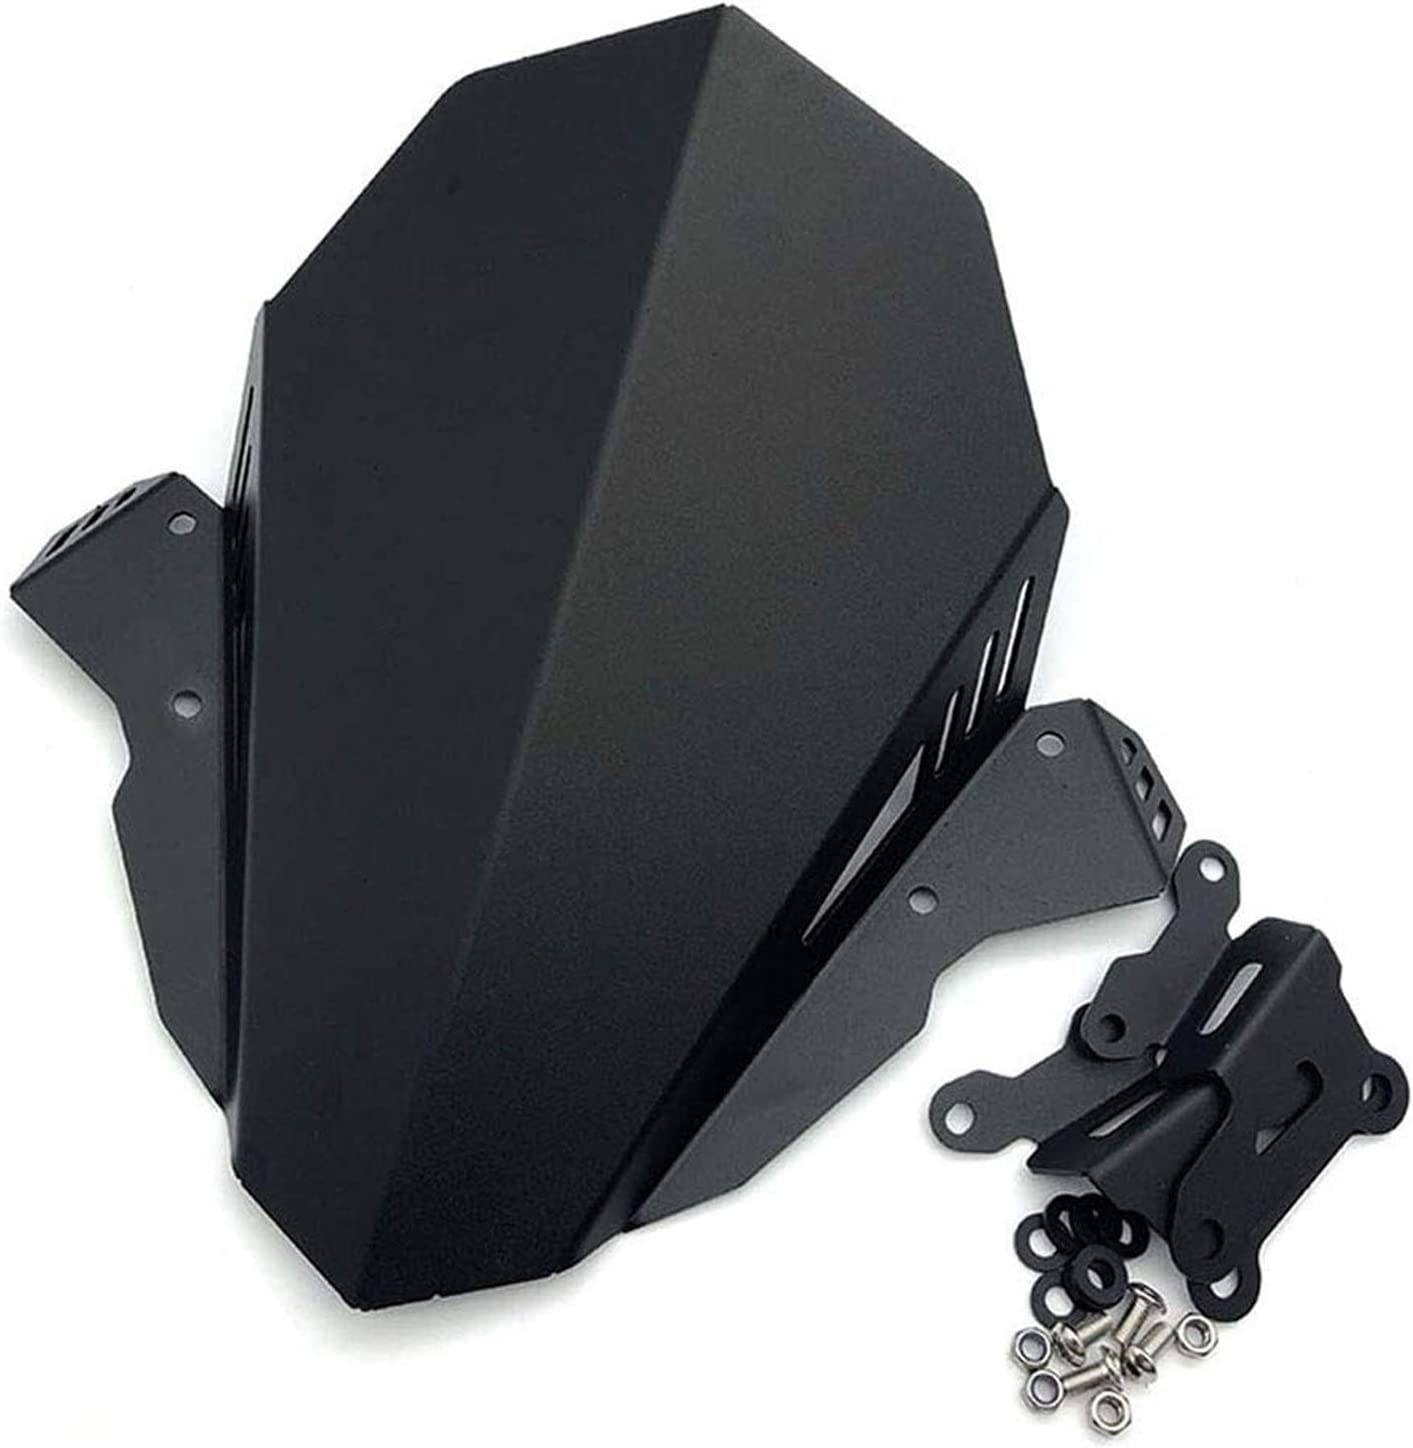 Windshield Spoiler Wind Limited time sale Deflector Protector Yamaha FZ-09 for Fort Worth Mall Fit